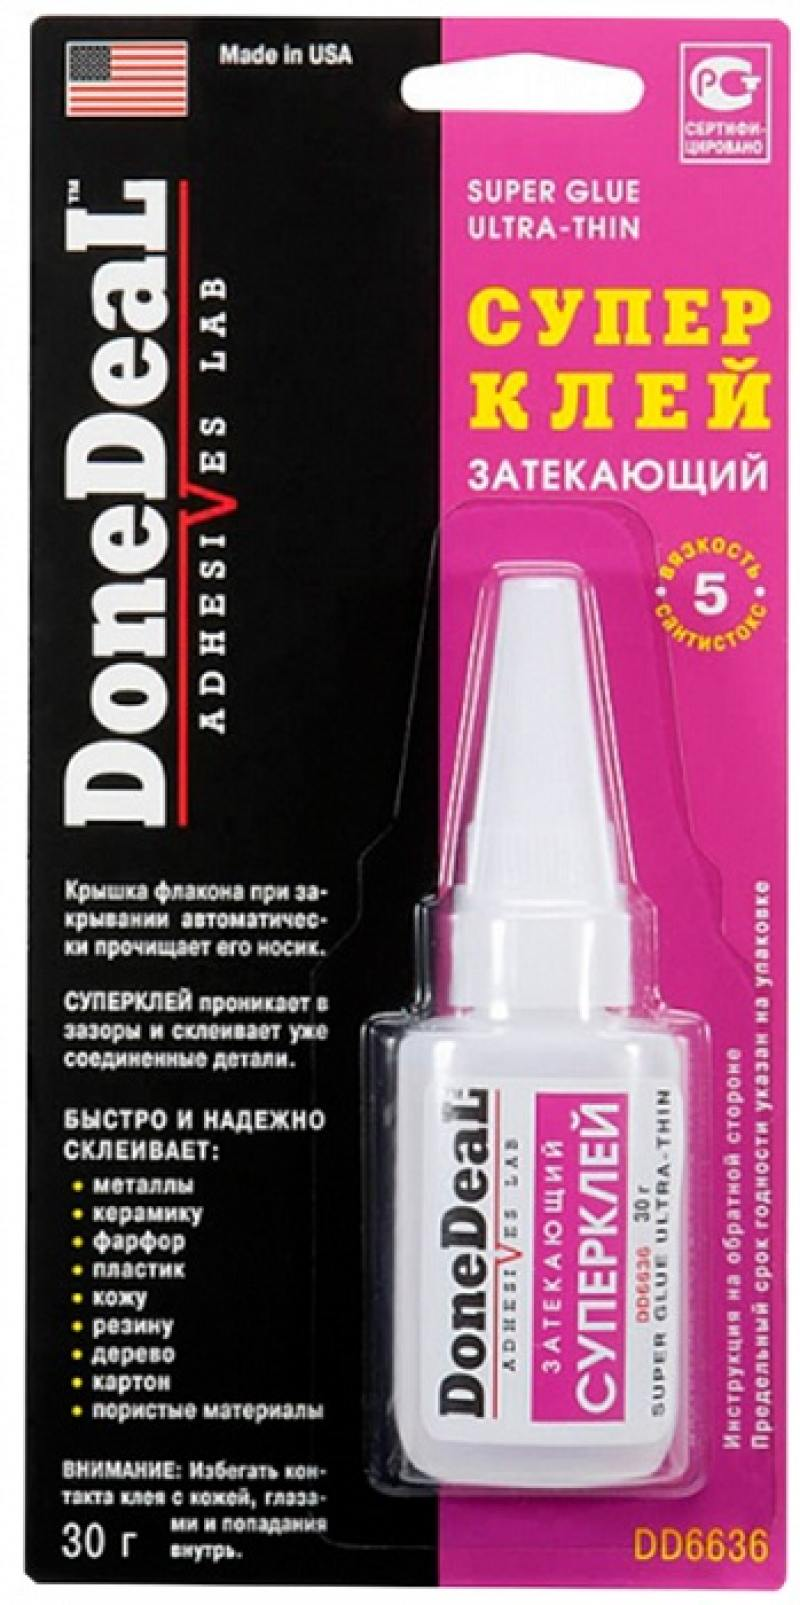 Суперклей Done Deal DD 6636 суперклей done deal dd 6601